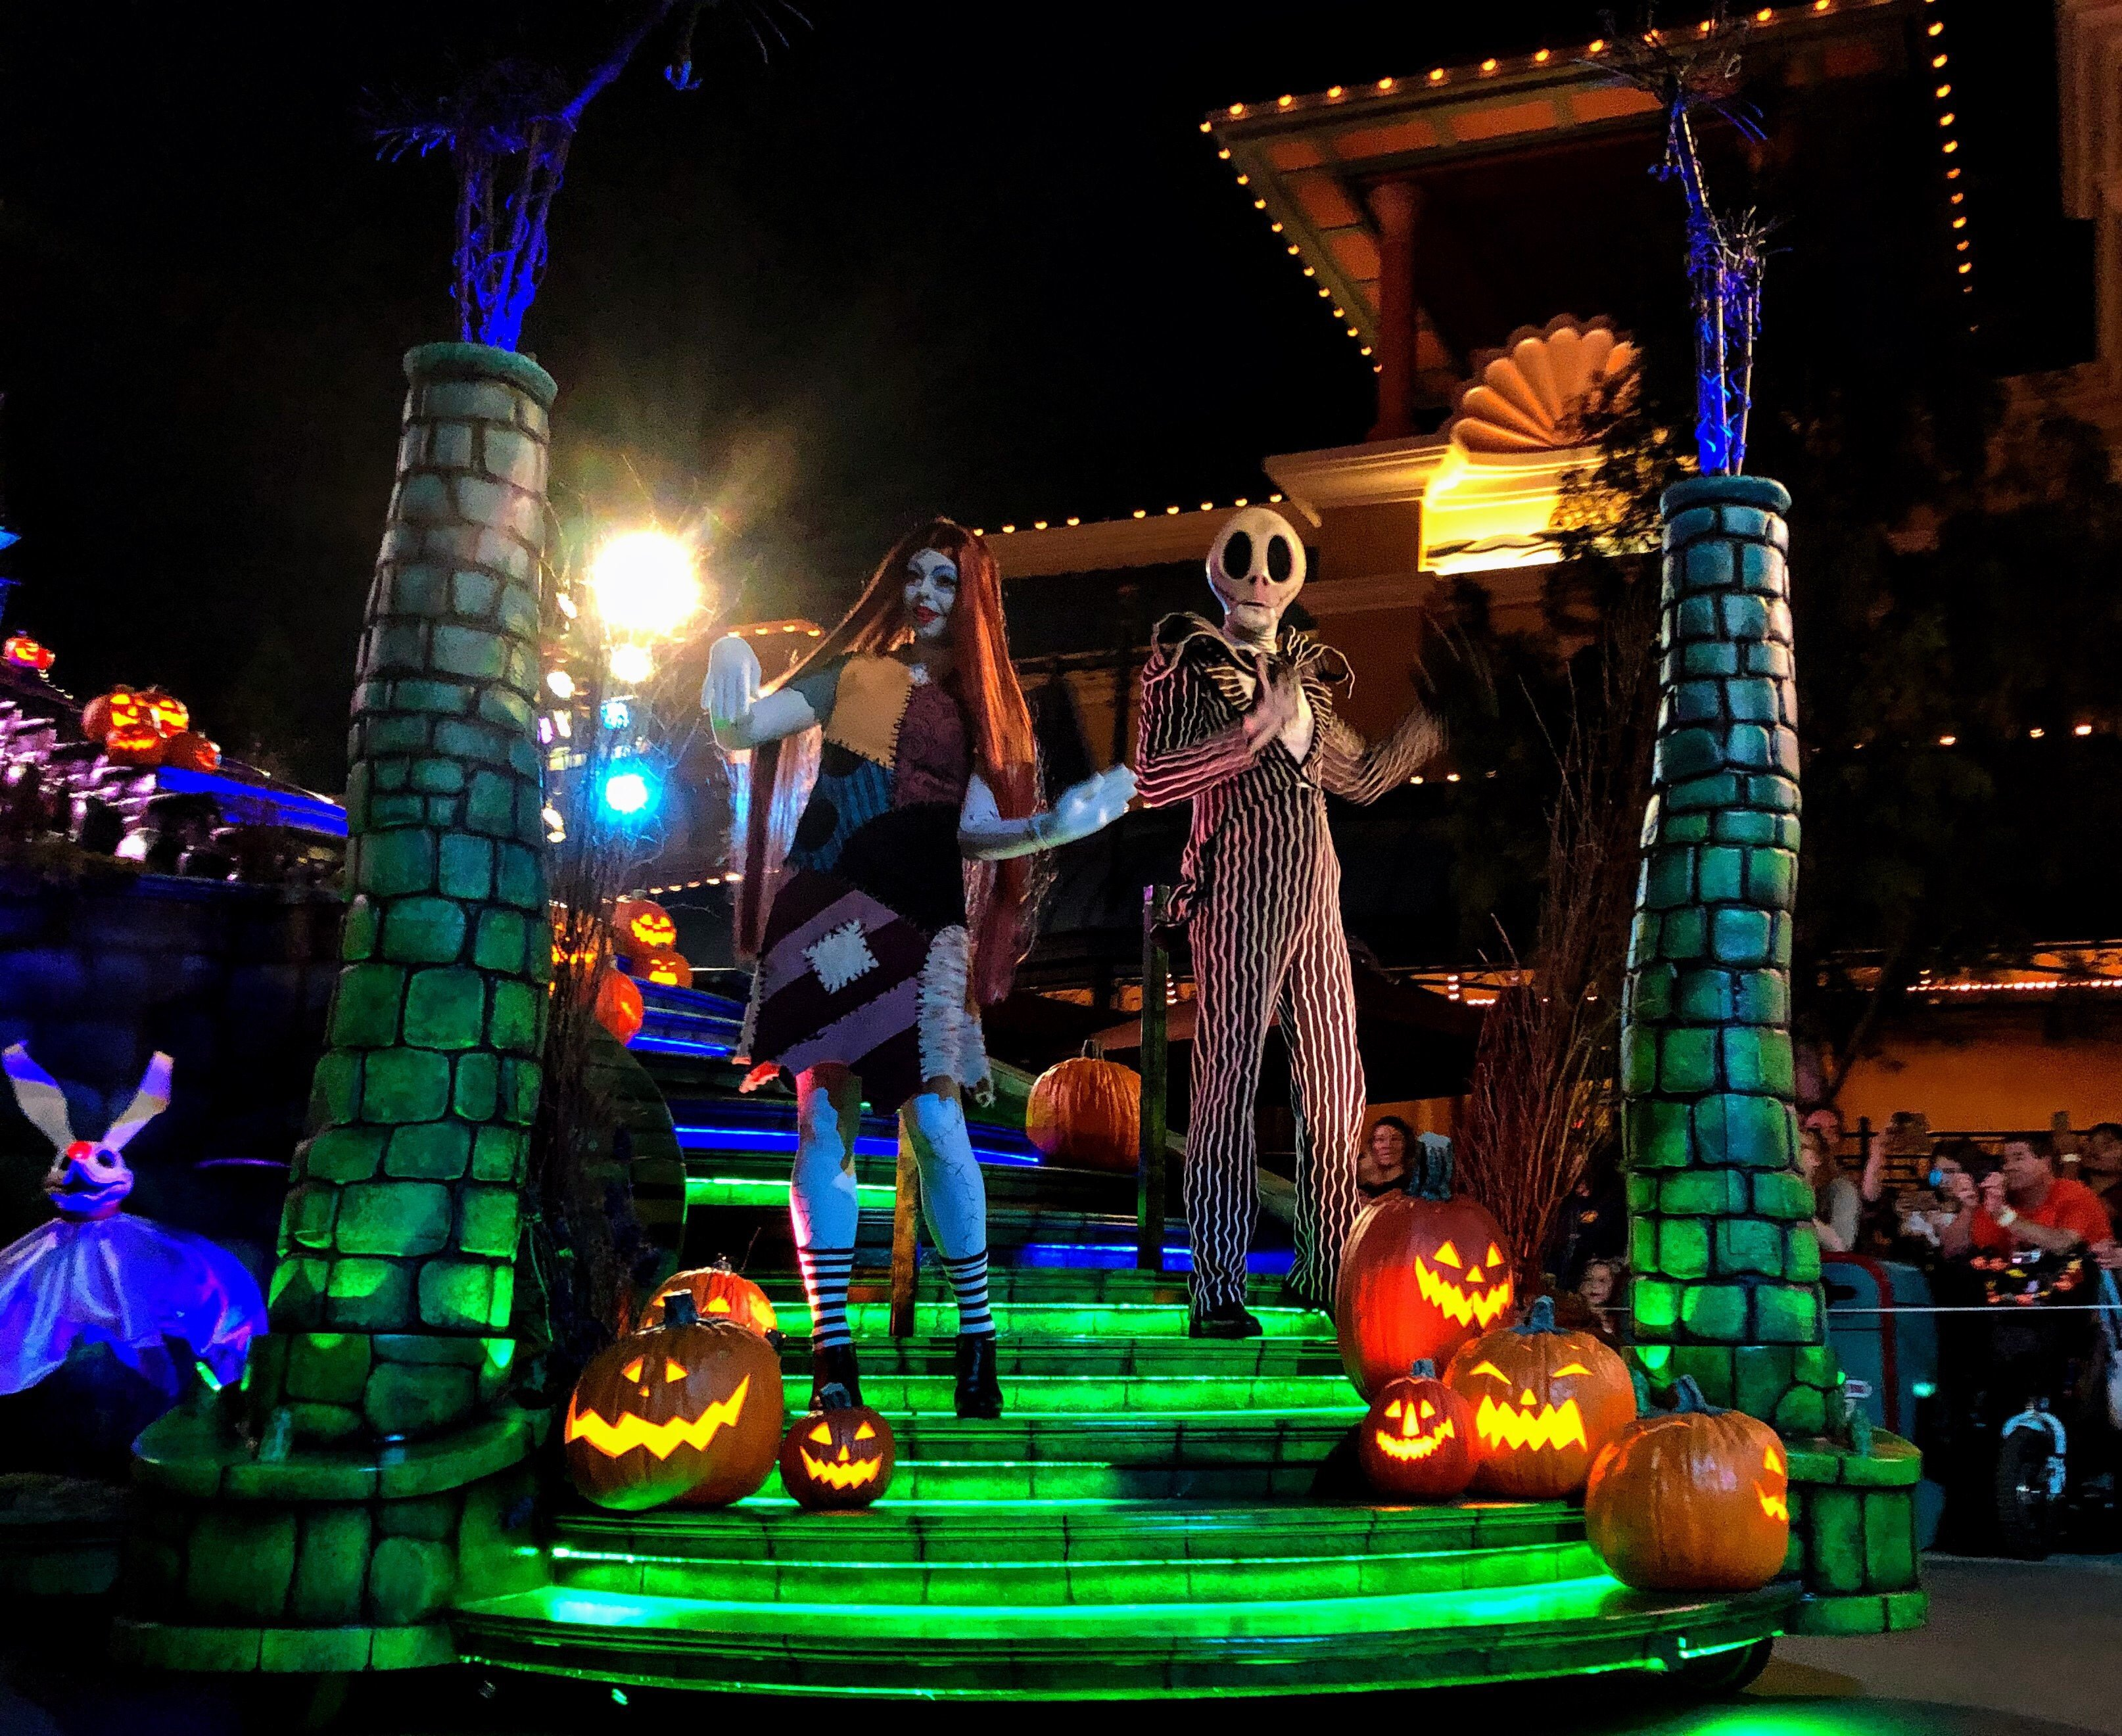 @mommytravels's cover photo for 'Oogie Boogie Bash at Disneyland'